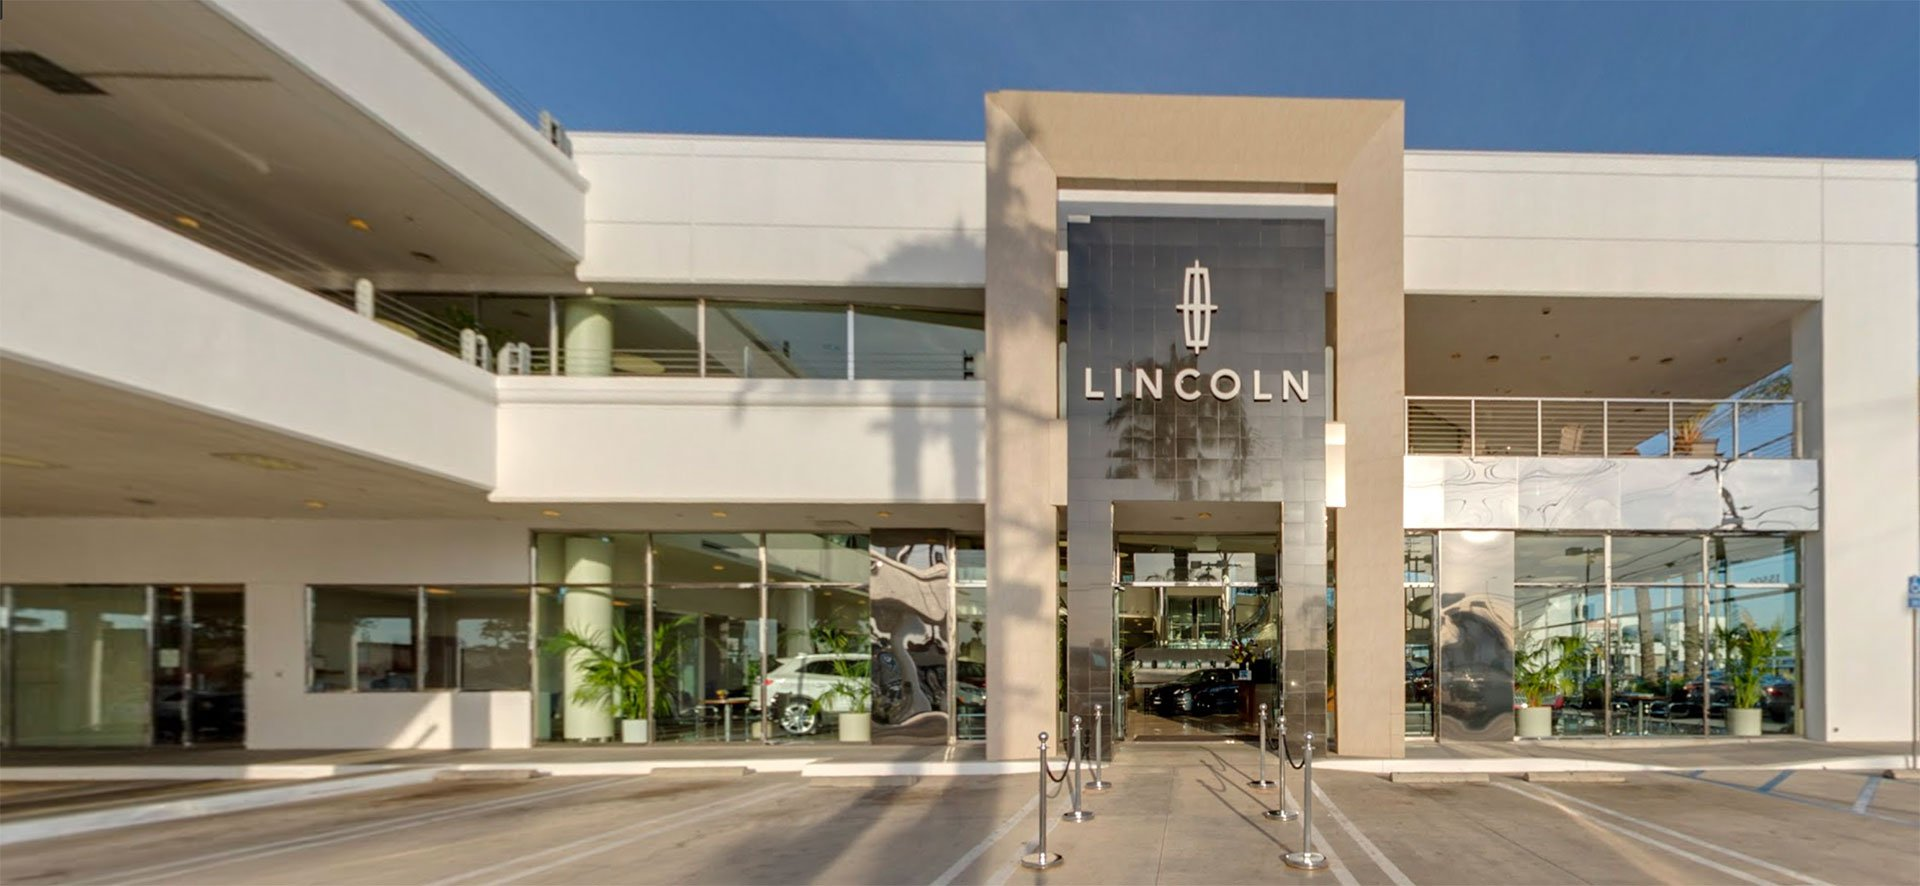 burke cars previous owned lincoln ca new me next dealerships jim bakersfield near luxury pre